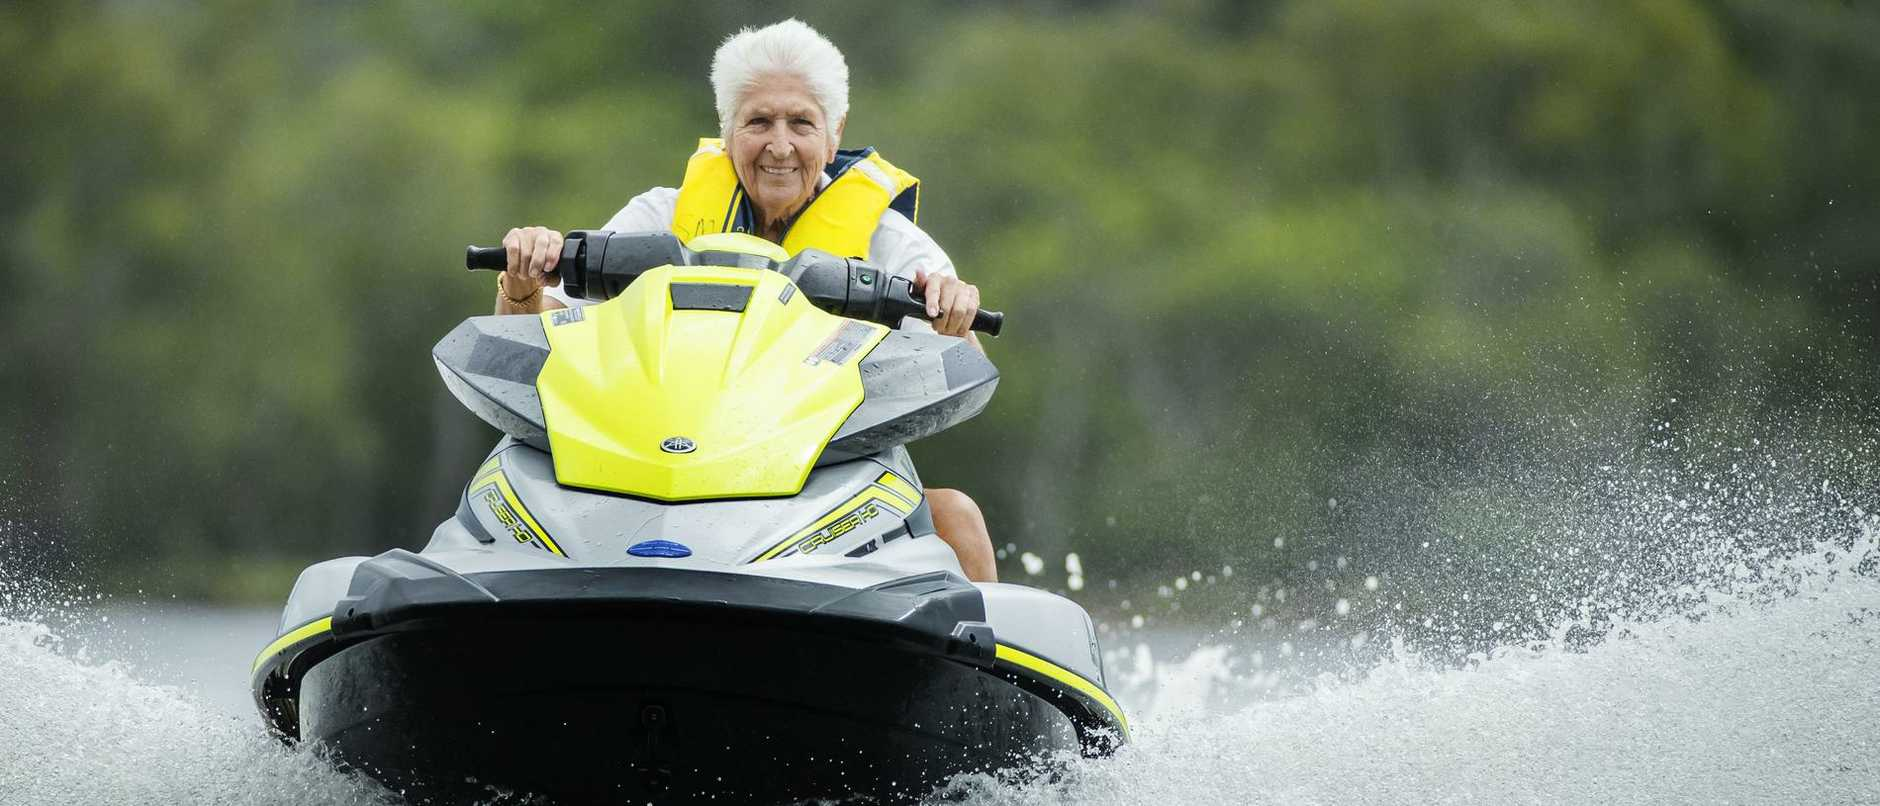 Olympic hero Dawn Fraser is a survivor who has triumphed over immense trauma and personal tragedy. Her  story reveals she has no intention of slowing down.